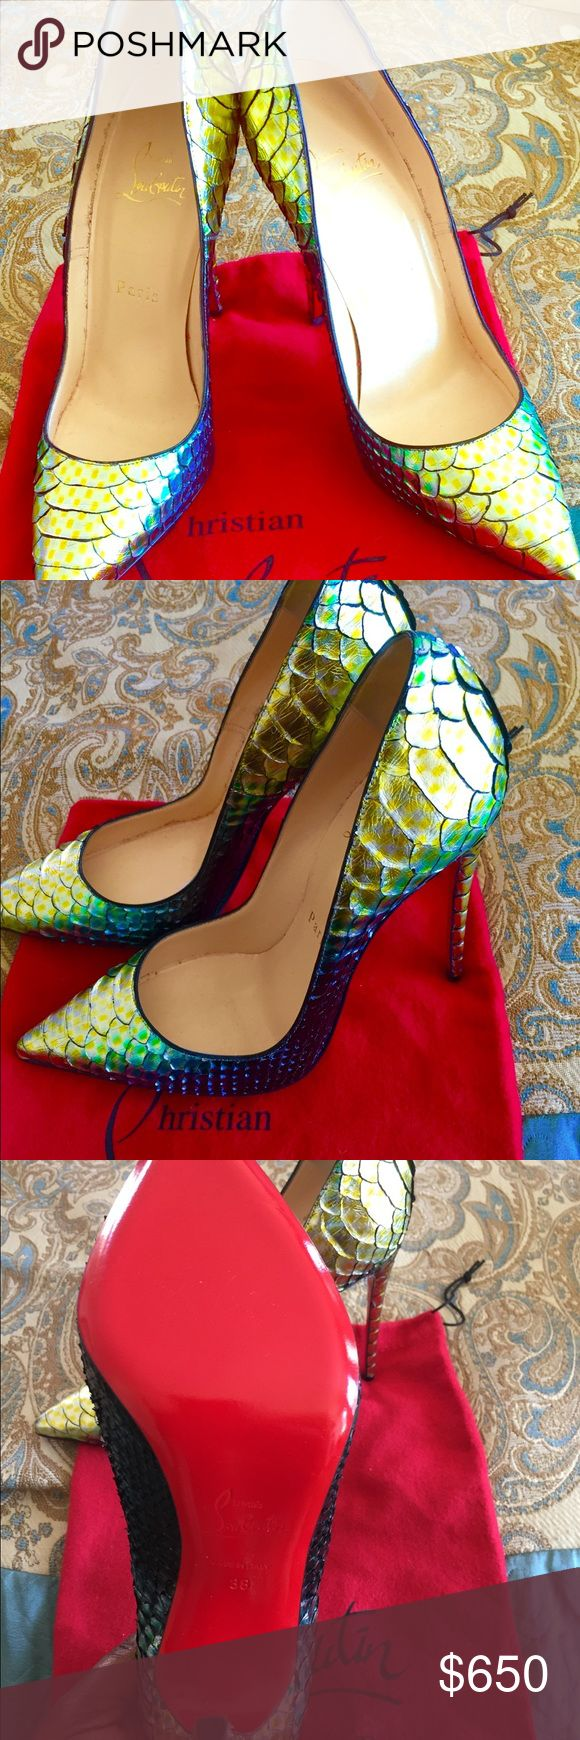 red sole shoes christian louboutin outlet nike shop reviews